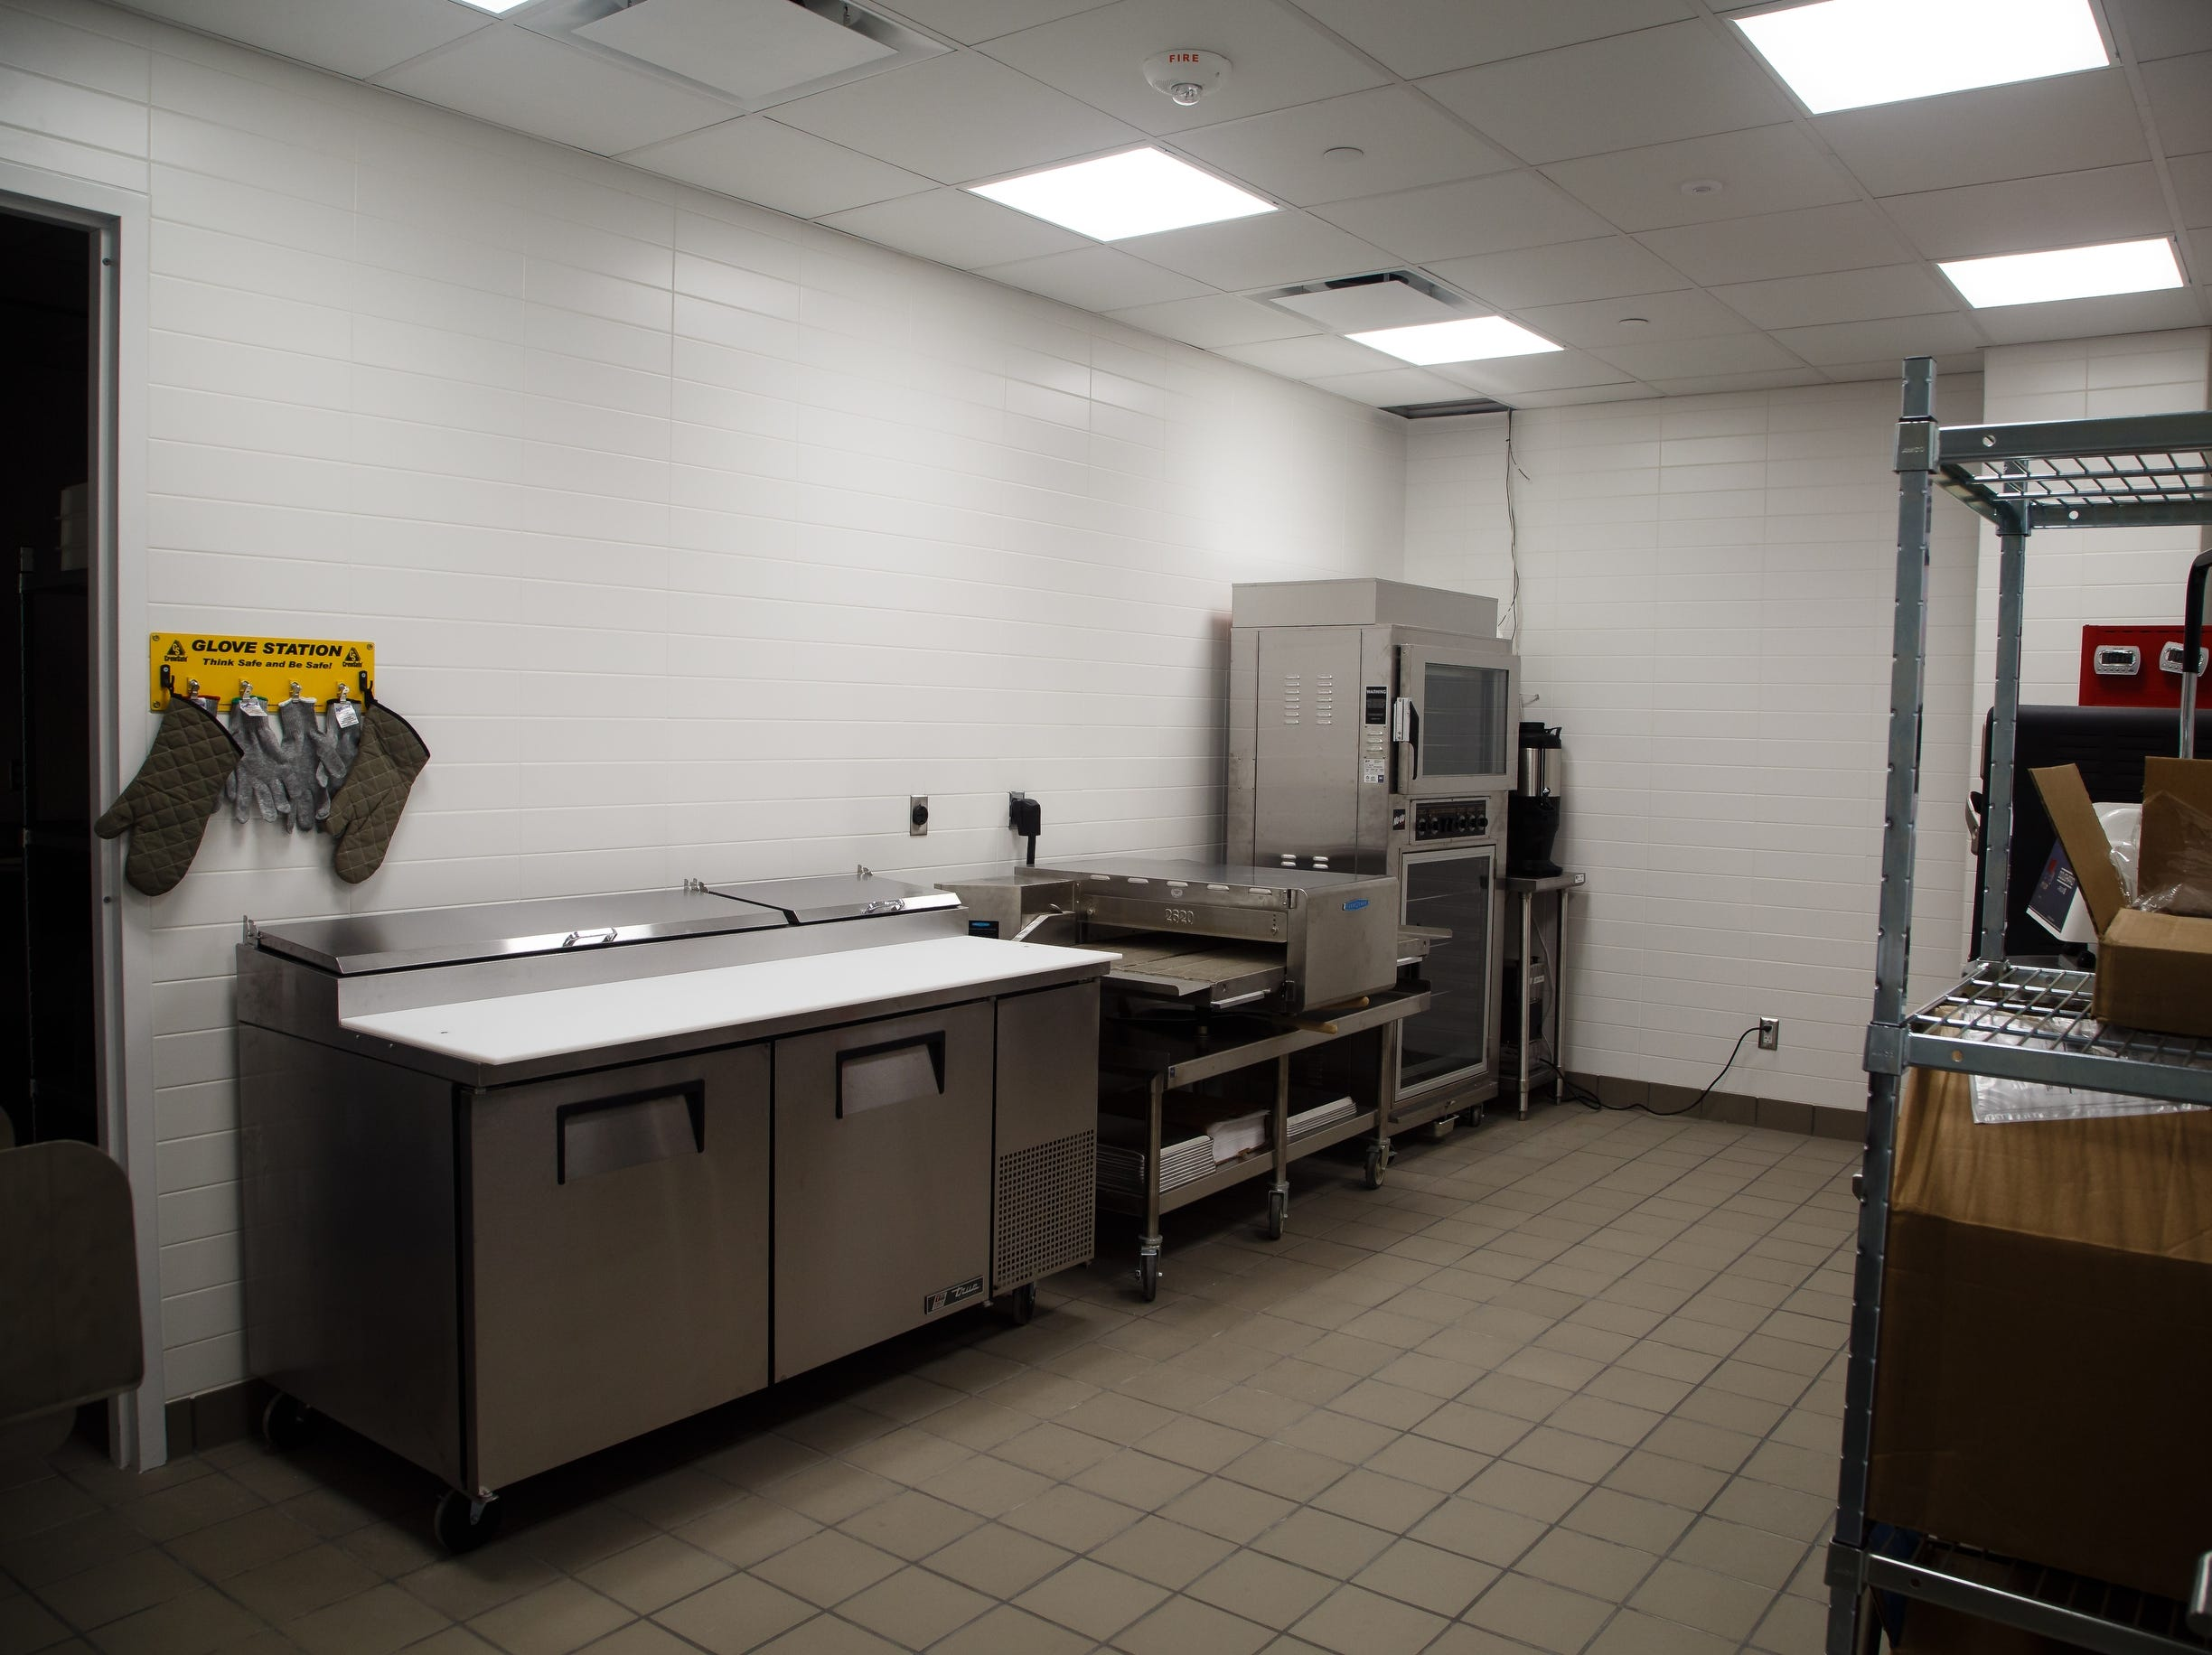 The test kitchen inside the new Krause Gateway Center downtown on Friday, Nov. 9, 2018, in Des Moines.